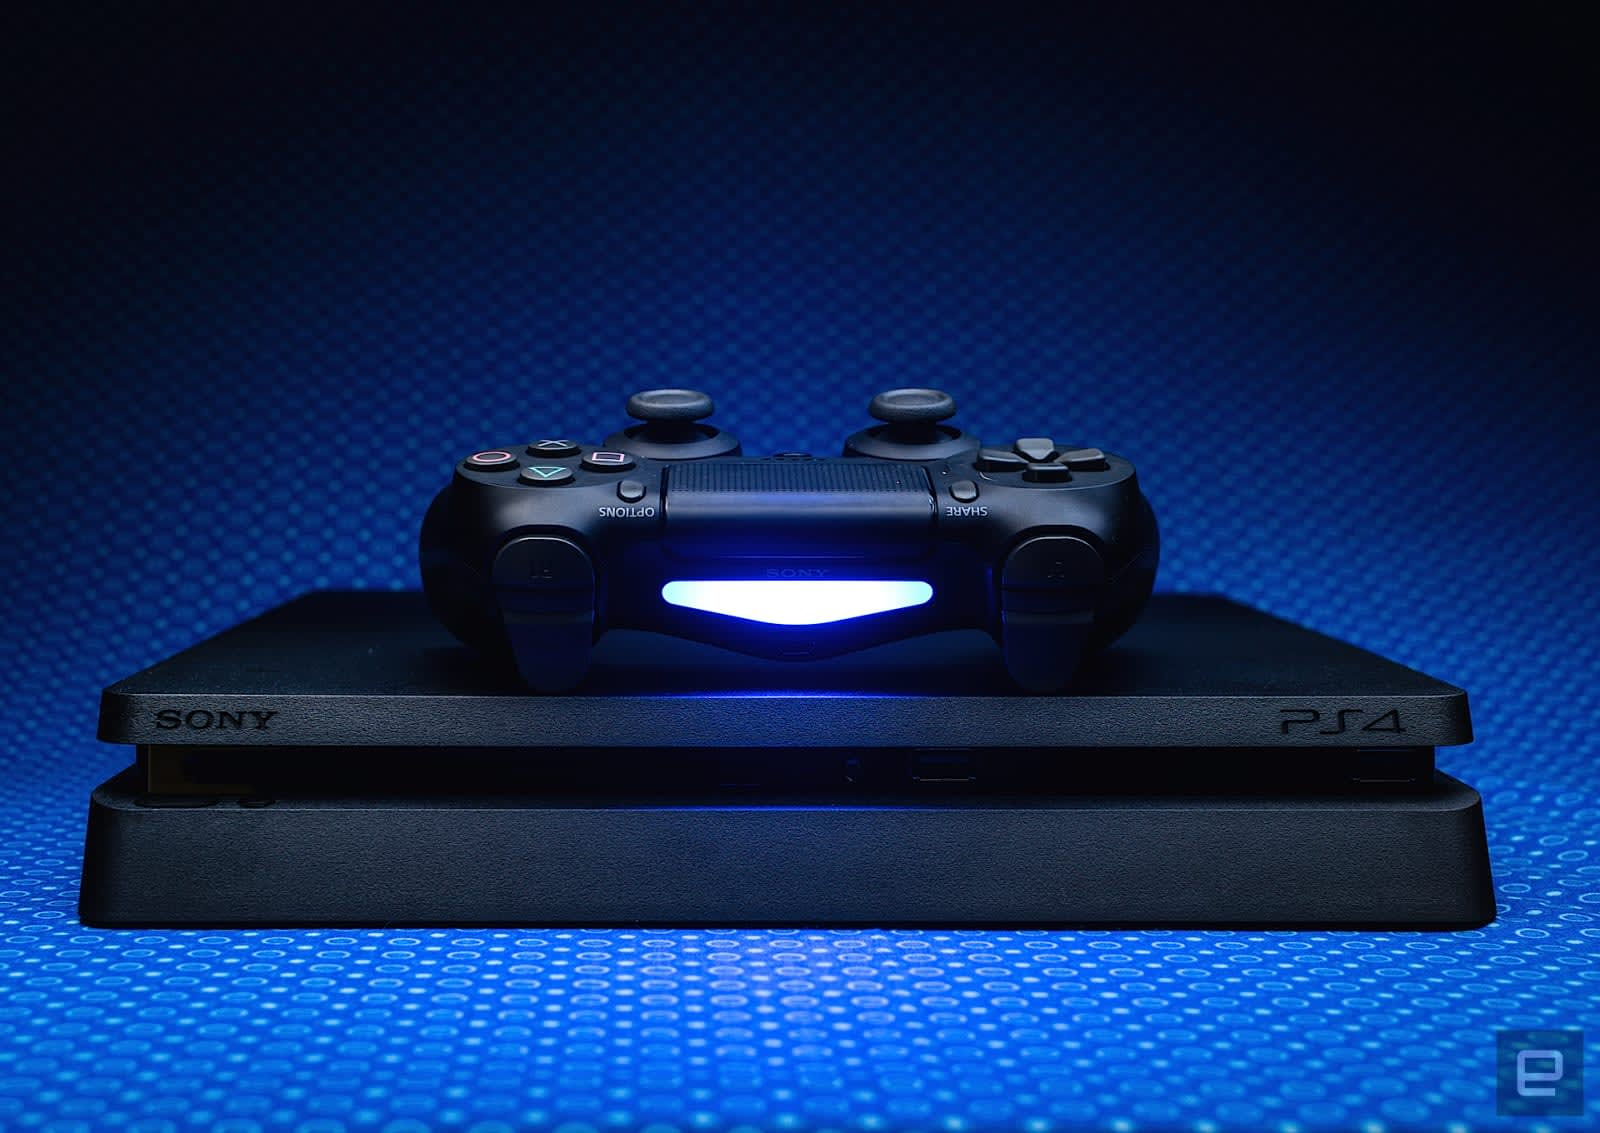 Carte Psn Black Friday.Sony Will Sell A Playstation 4 For 200 On Black Friday